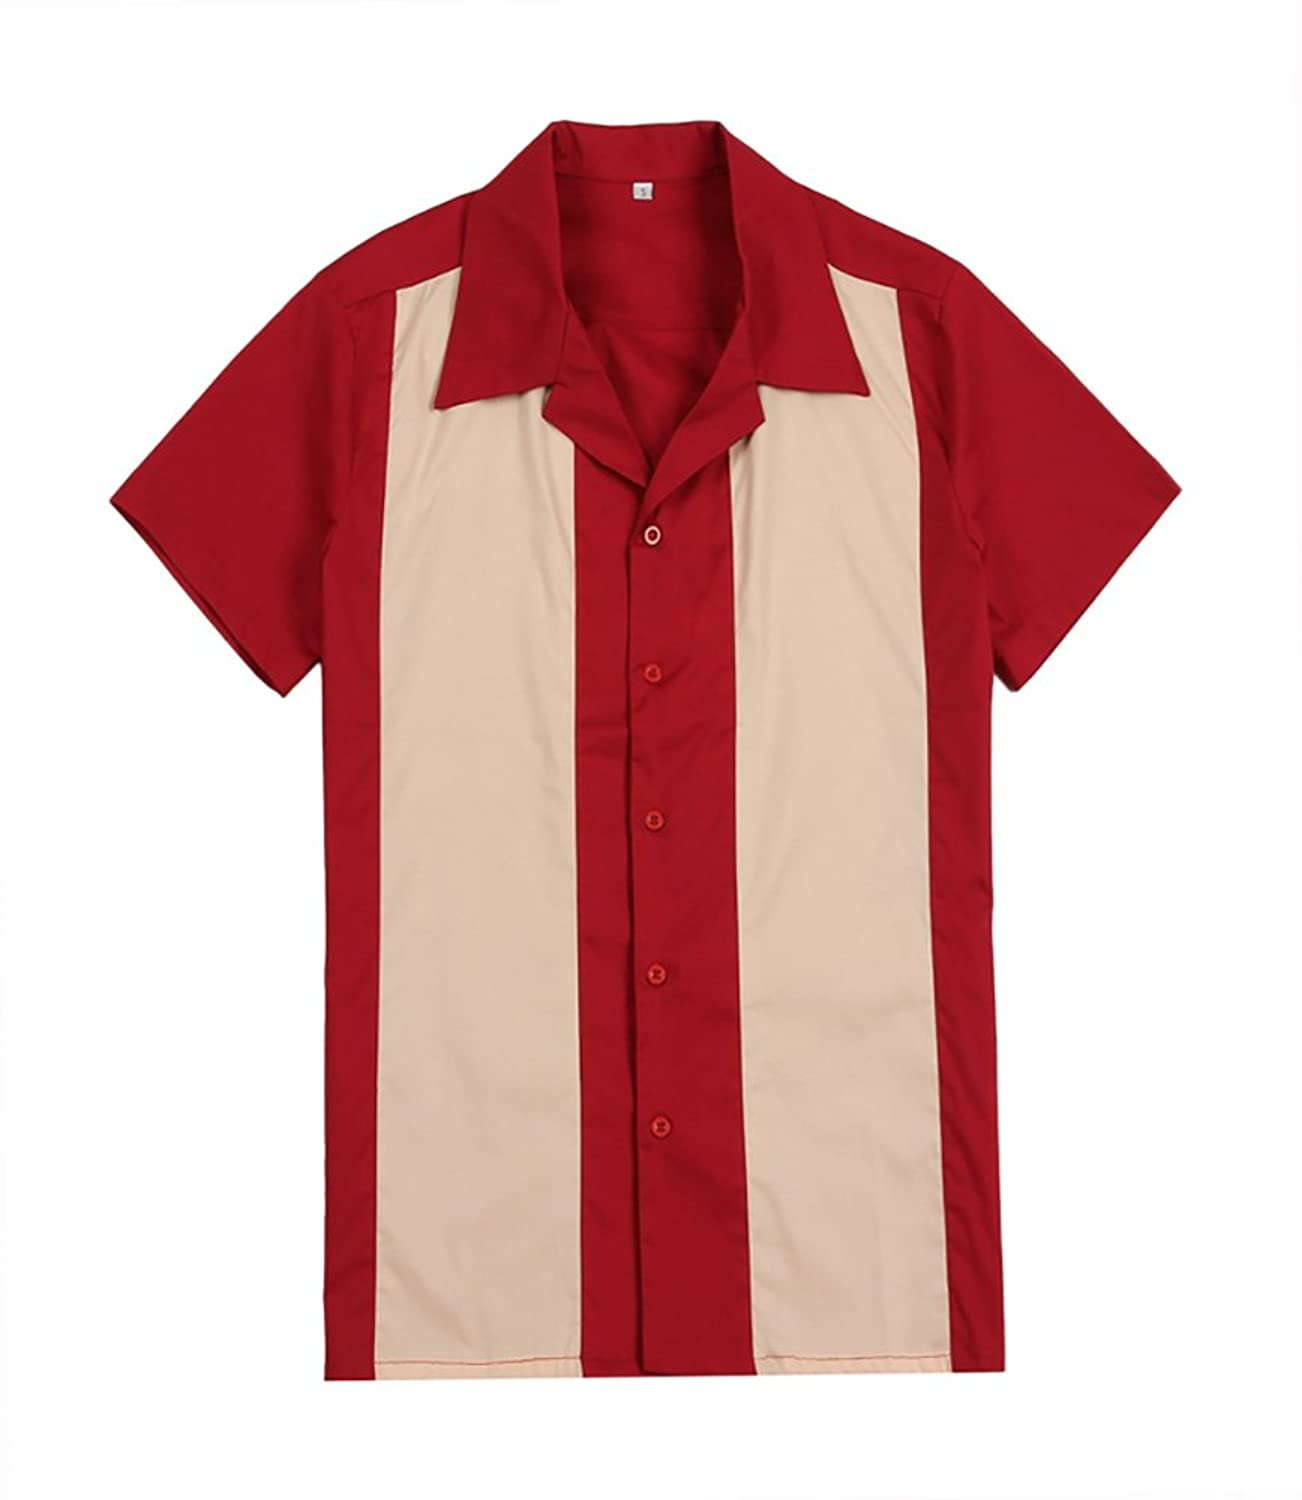 50s Costumes | 50s Halloween Costumes Mens Rockabilly Vintage 50s Clothing Short Sleeve Bowling Shirts Red Cream $24.71 AT vintagedancer.com